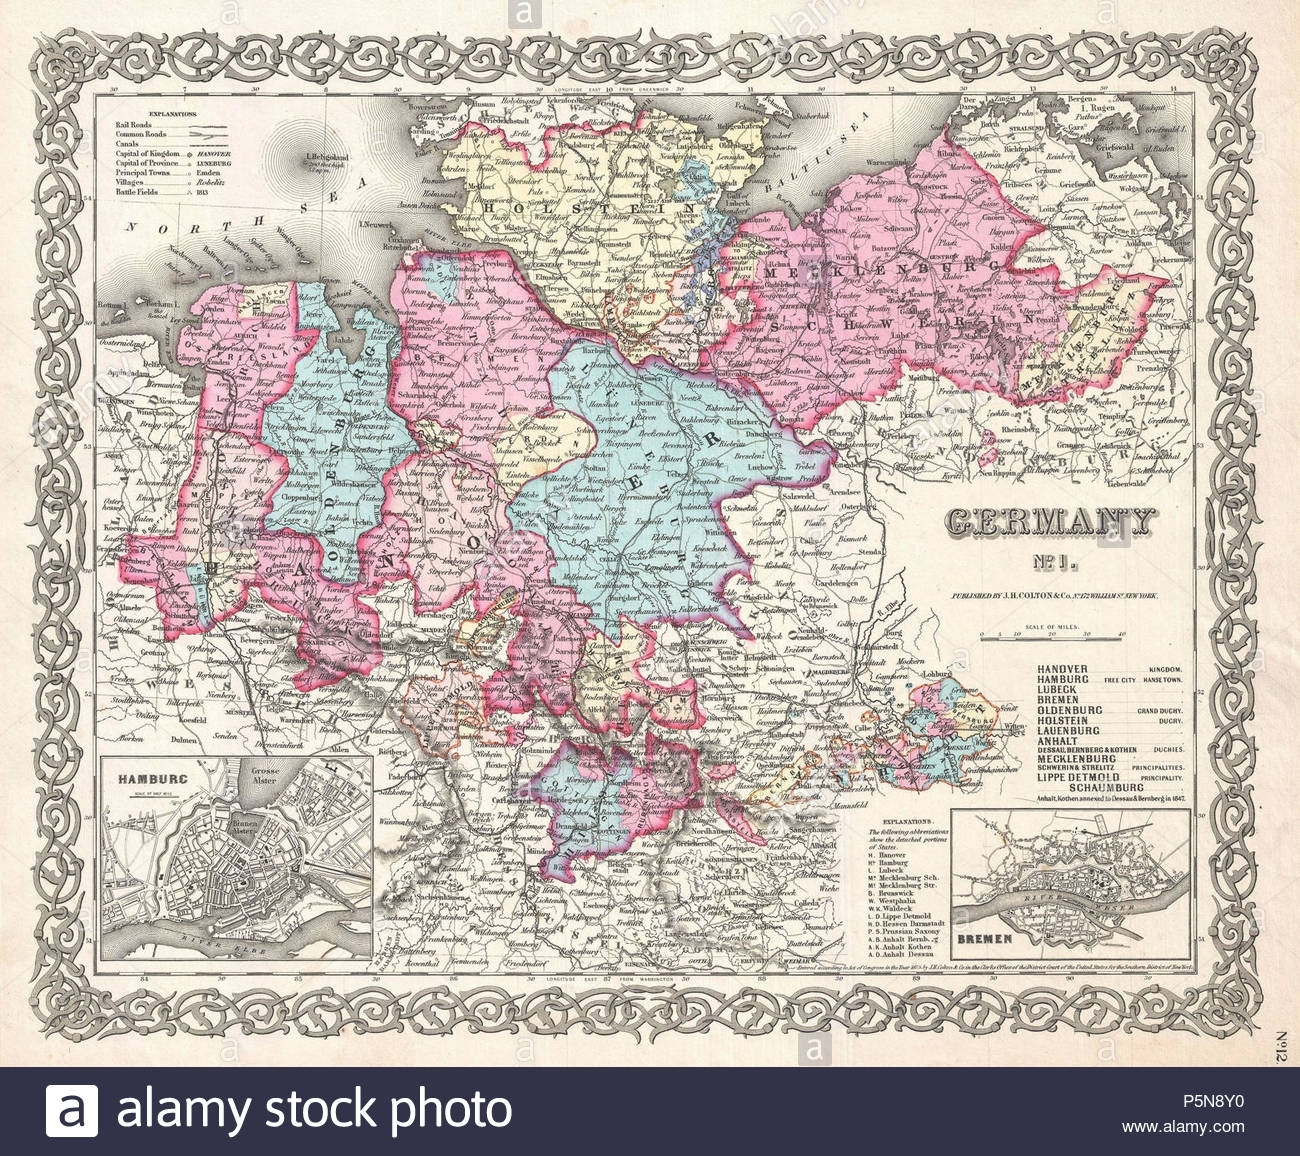 Hannover Germany Map Stock Photos & Hannover Germany Map Stock in Map Of Hannover Germany In 1850